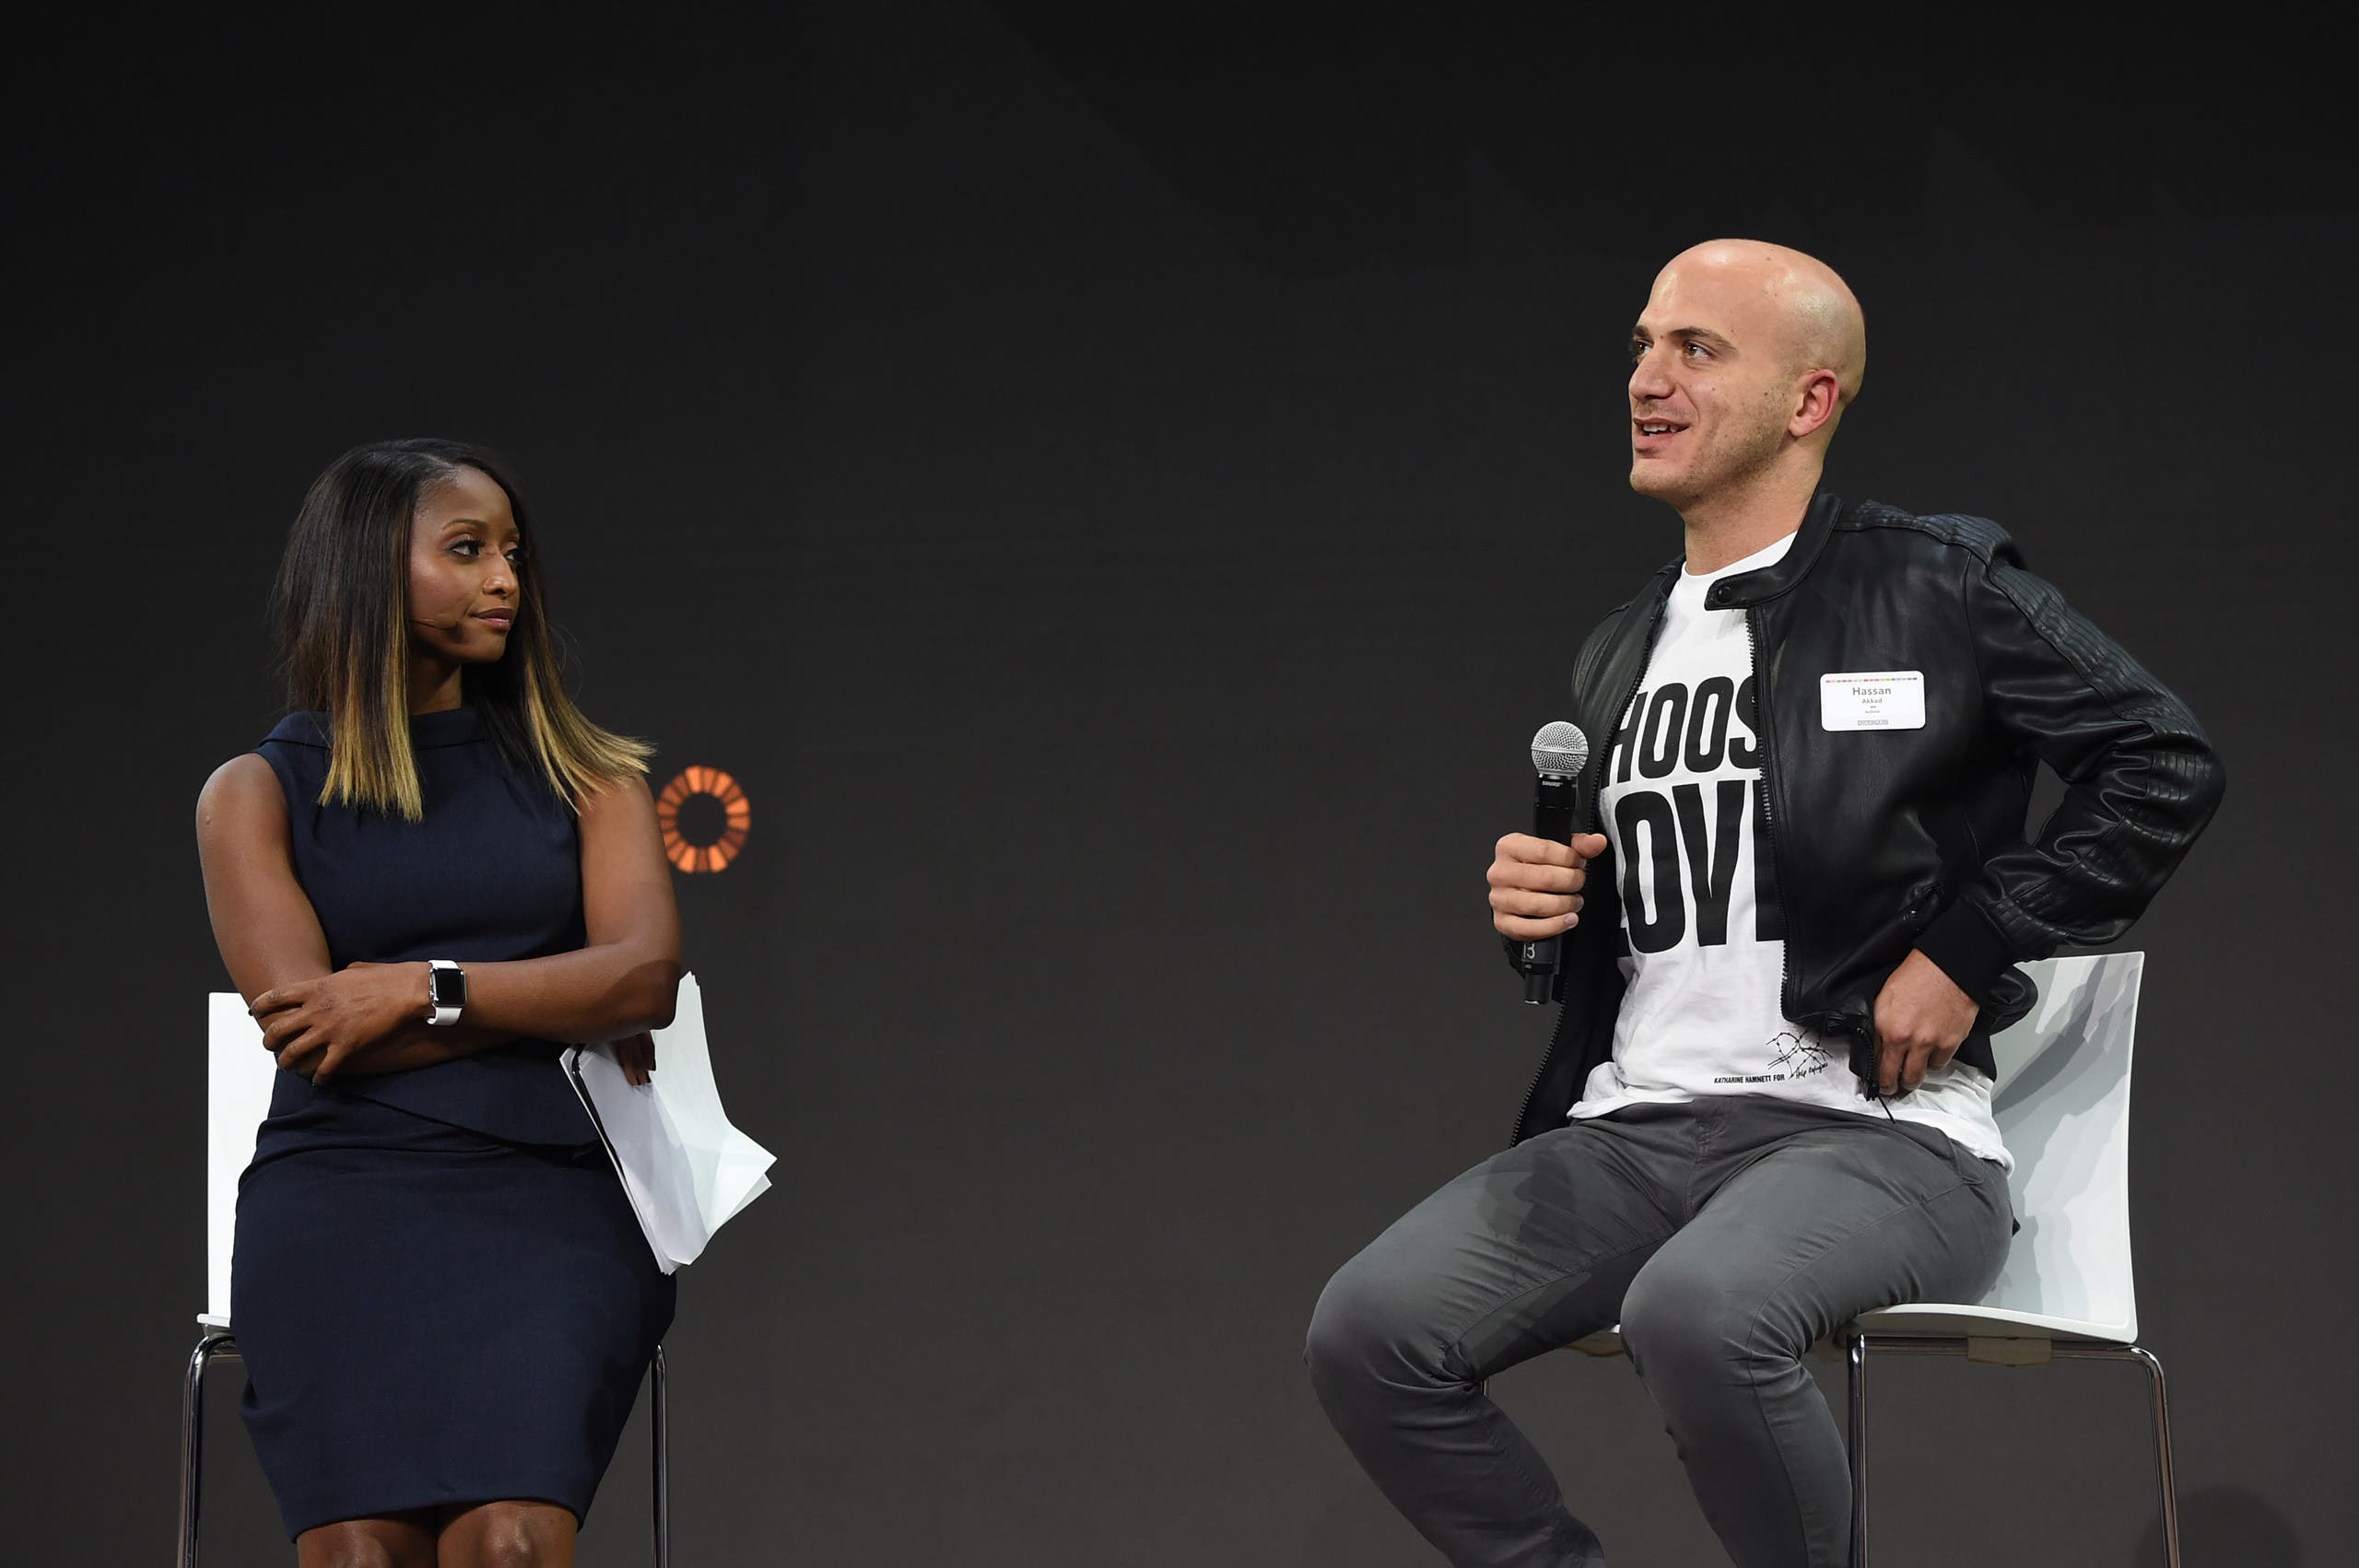 Isha Sesay and Hassan Akkad speak at Goalkeepers 2017, at Jazz at Lincoln Center on September 20, 2017 in New York City. (AFP)